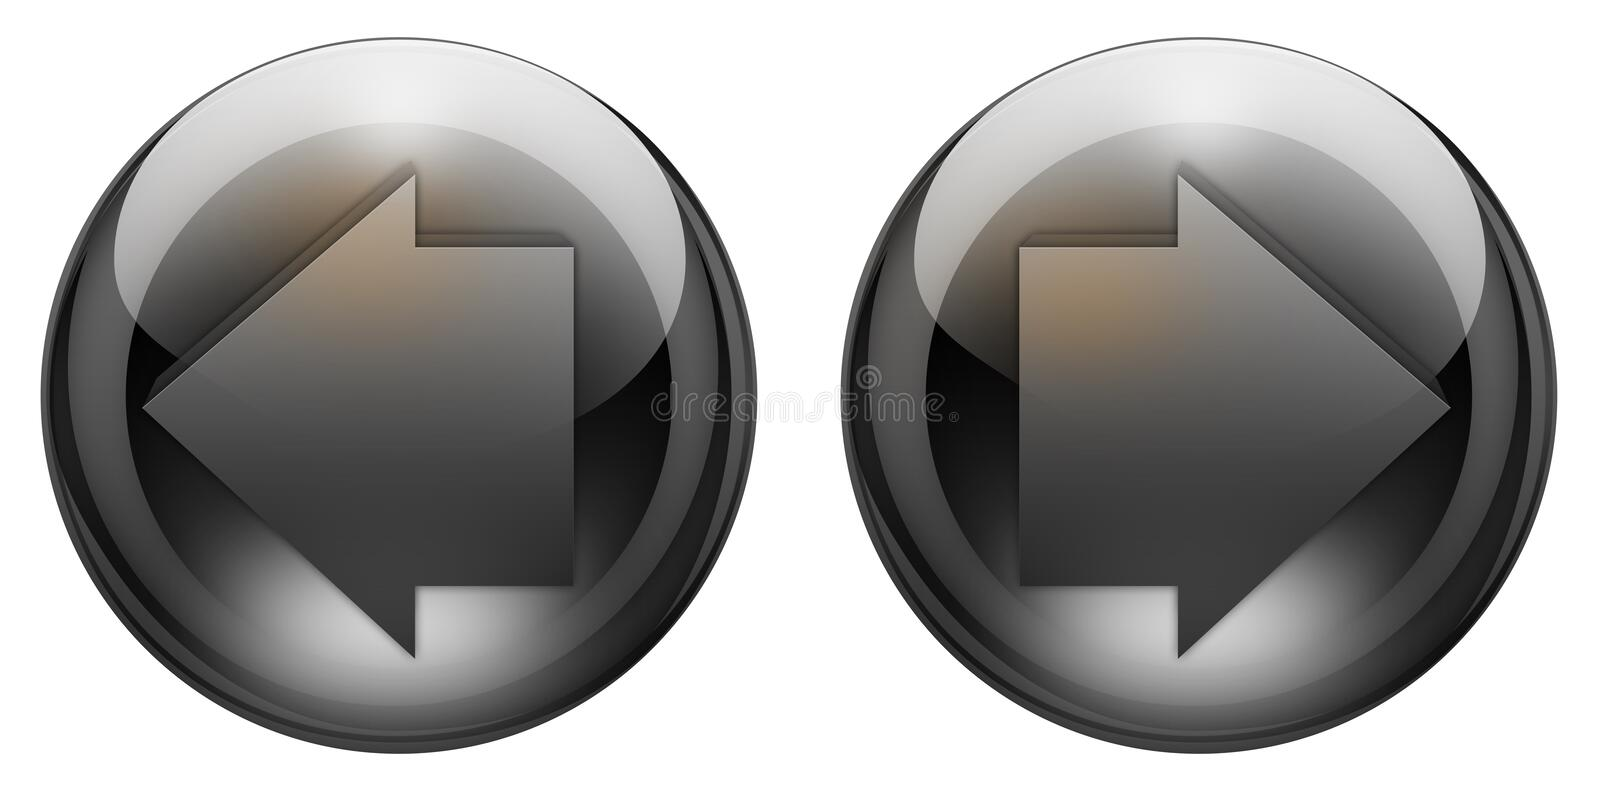 Graphite arrow buttons stock photo